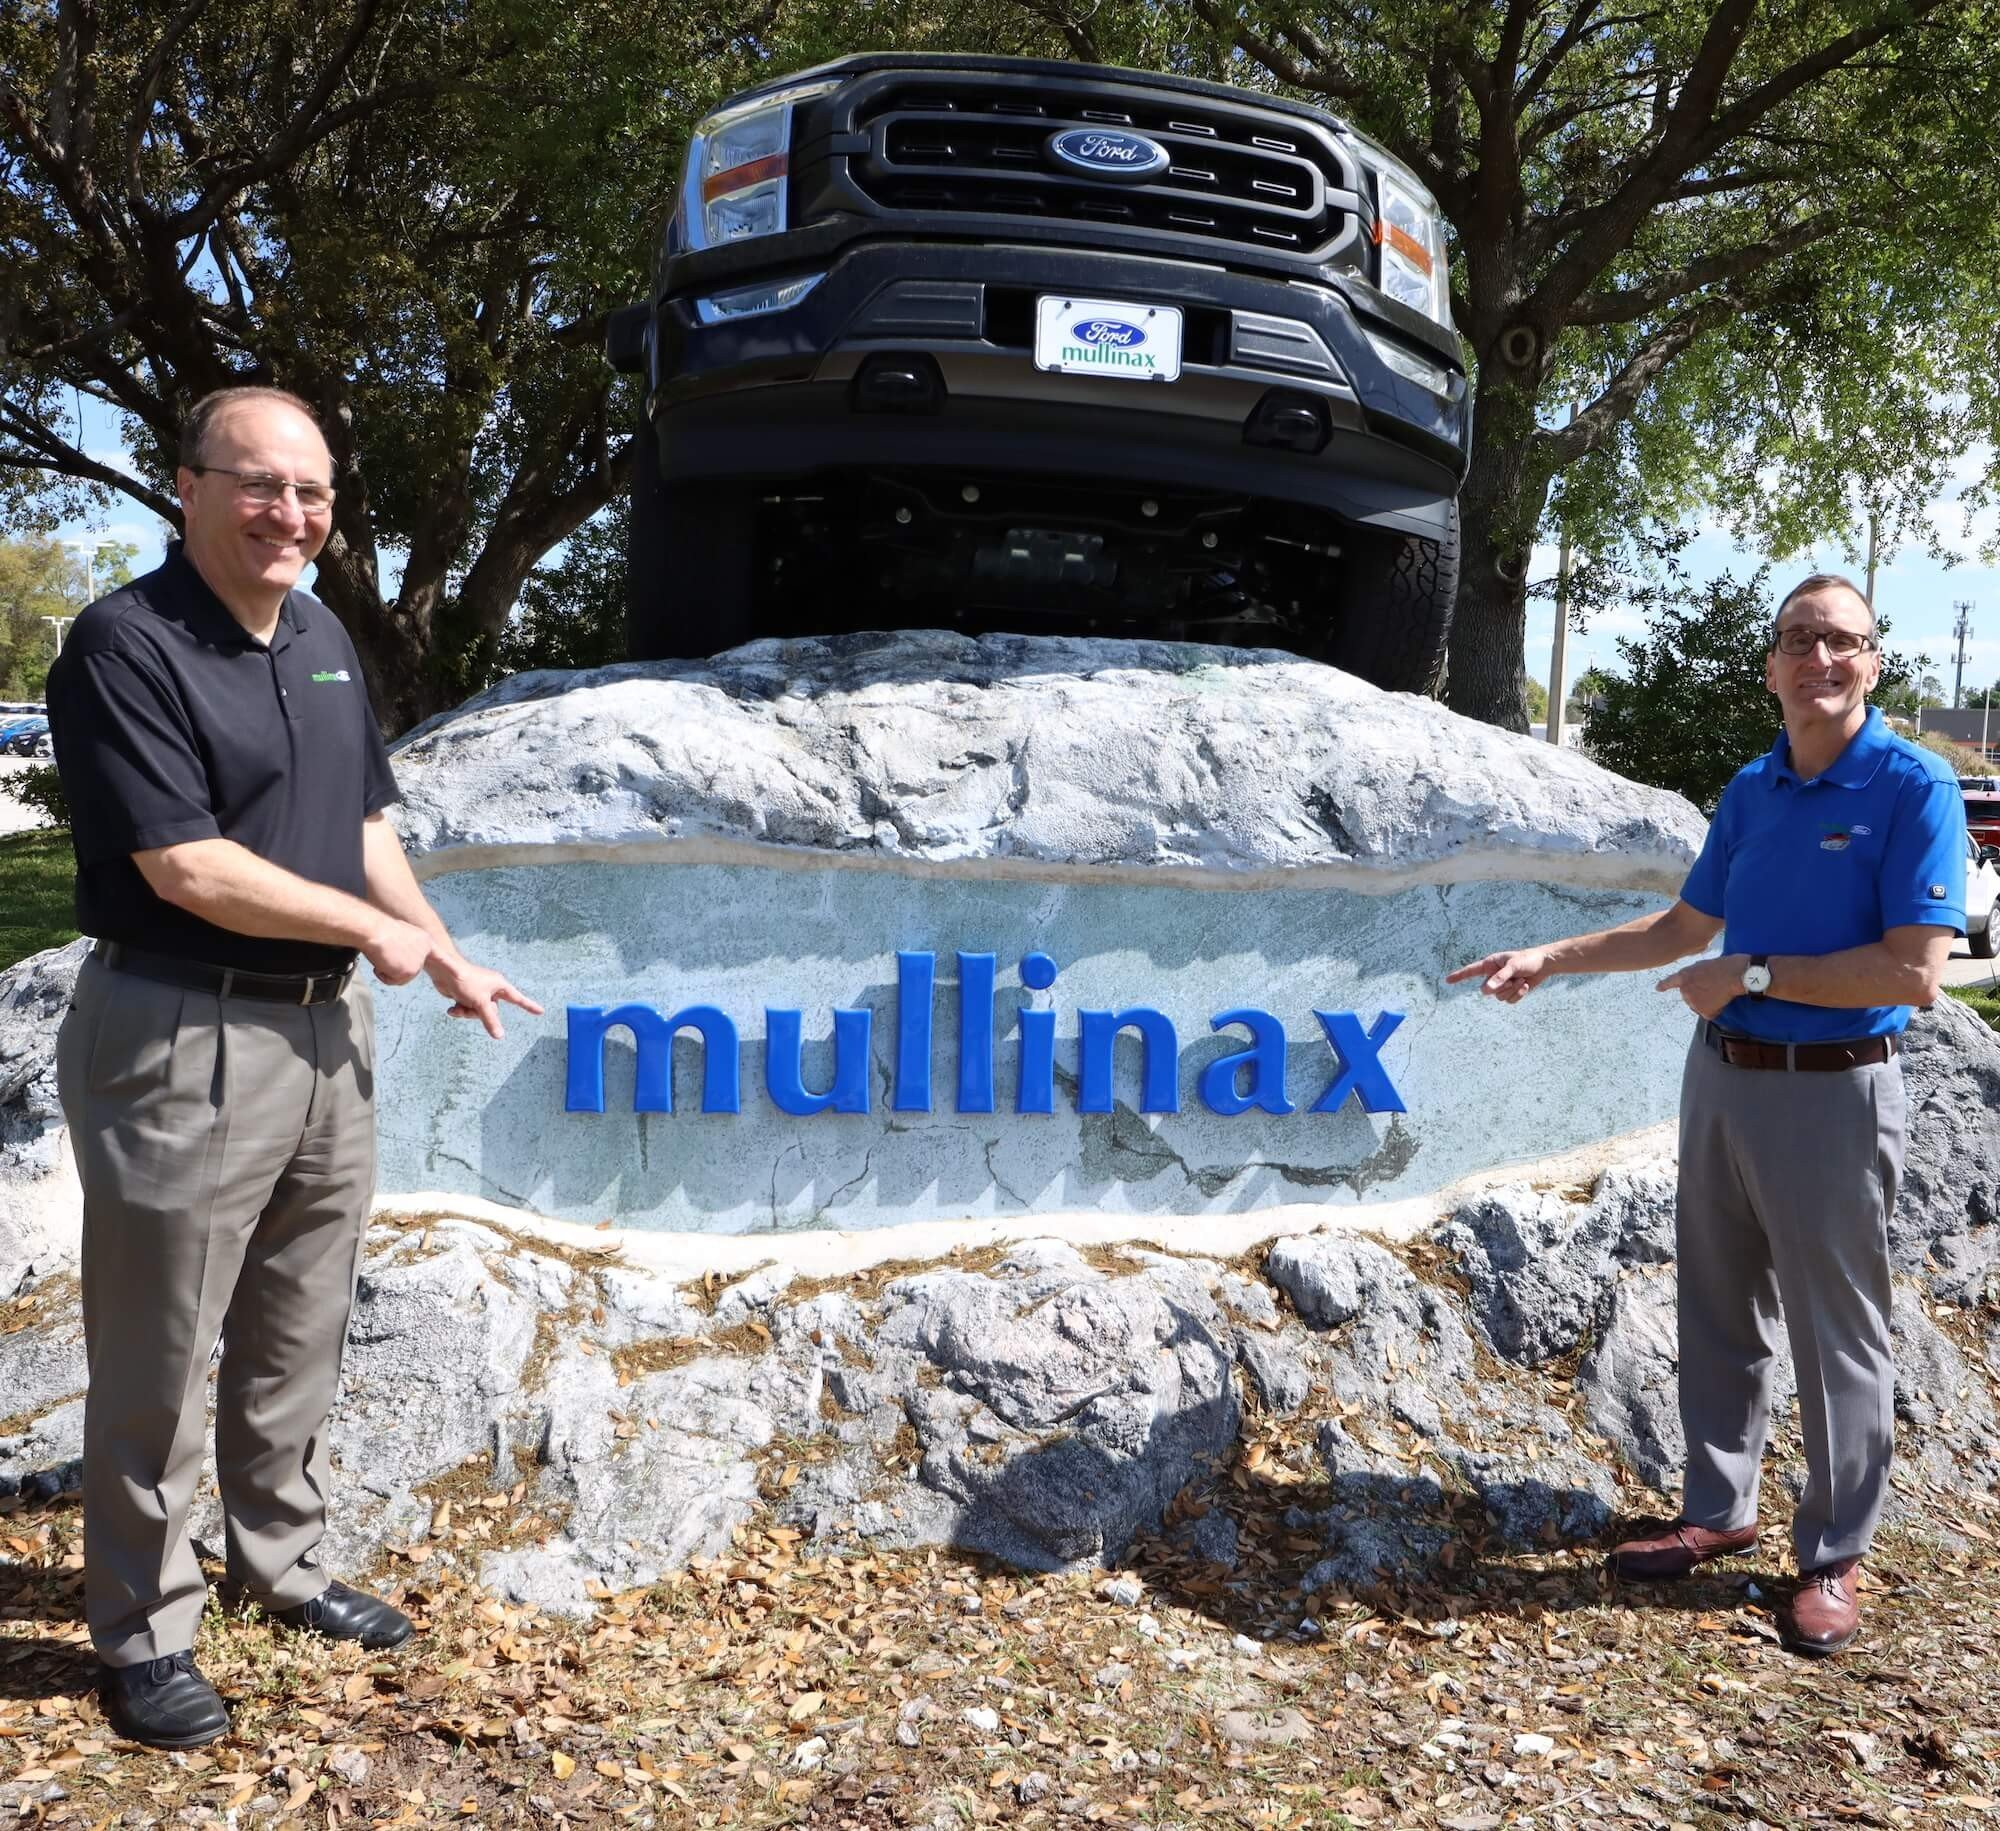 Mullinax Ford - Larry and Jerry with F-150 on Rock